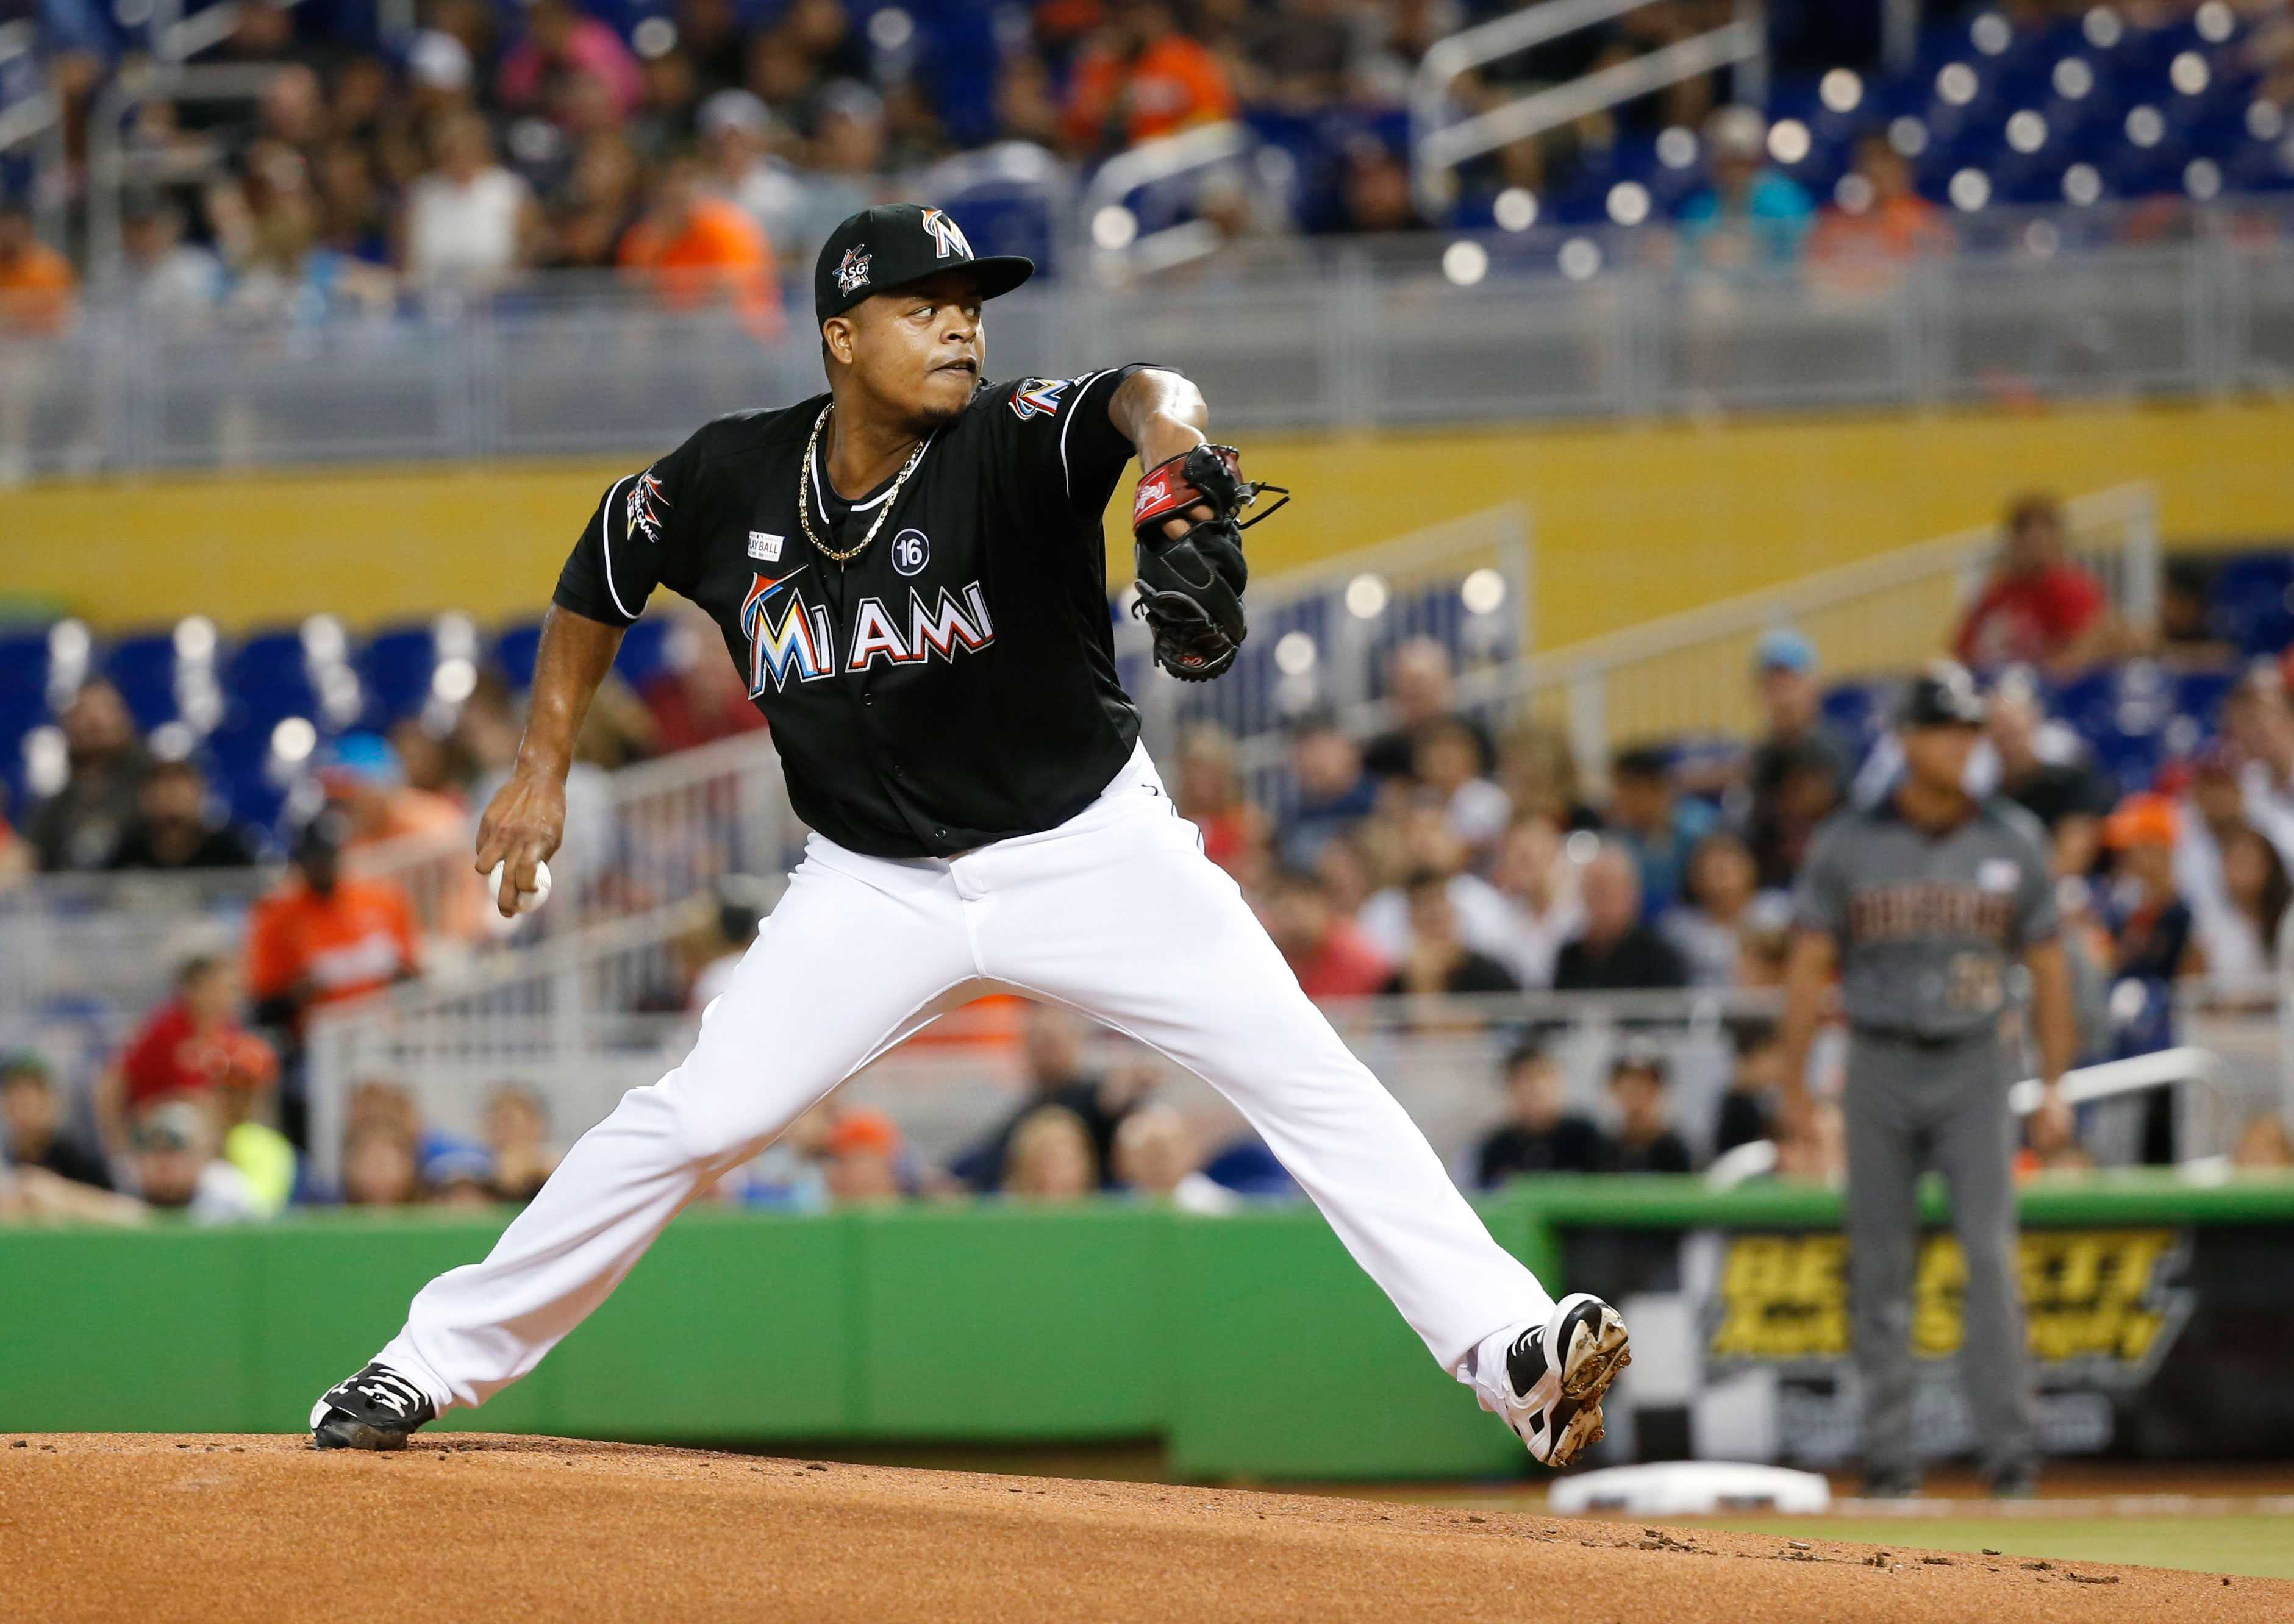 Stanton scores 3 times, Marlins top D-Backs 7-5